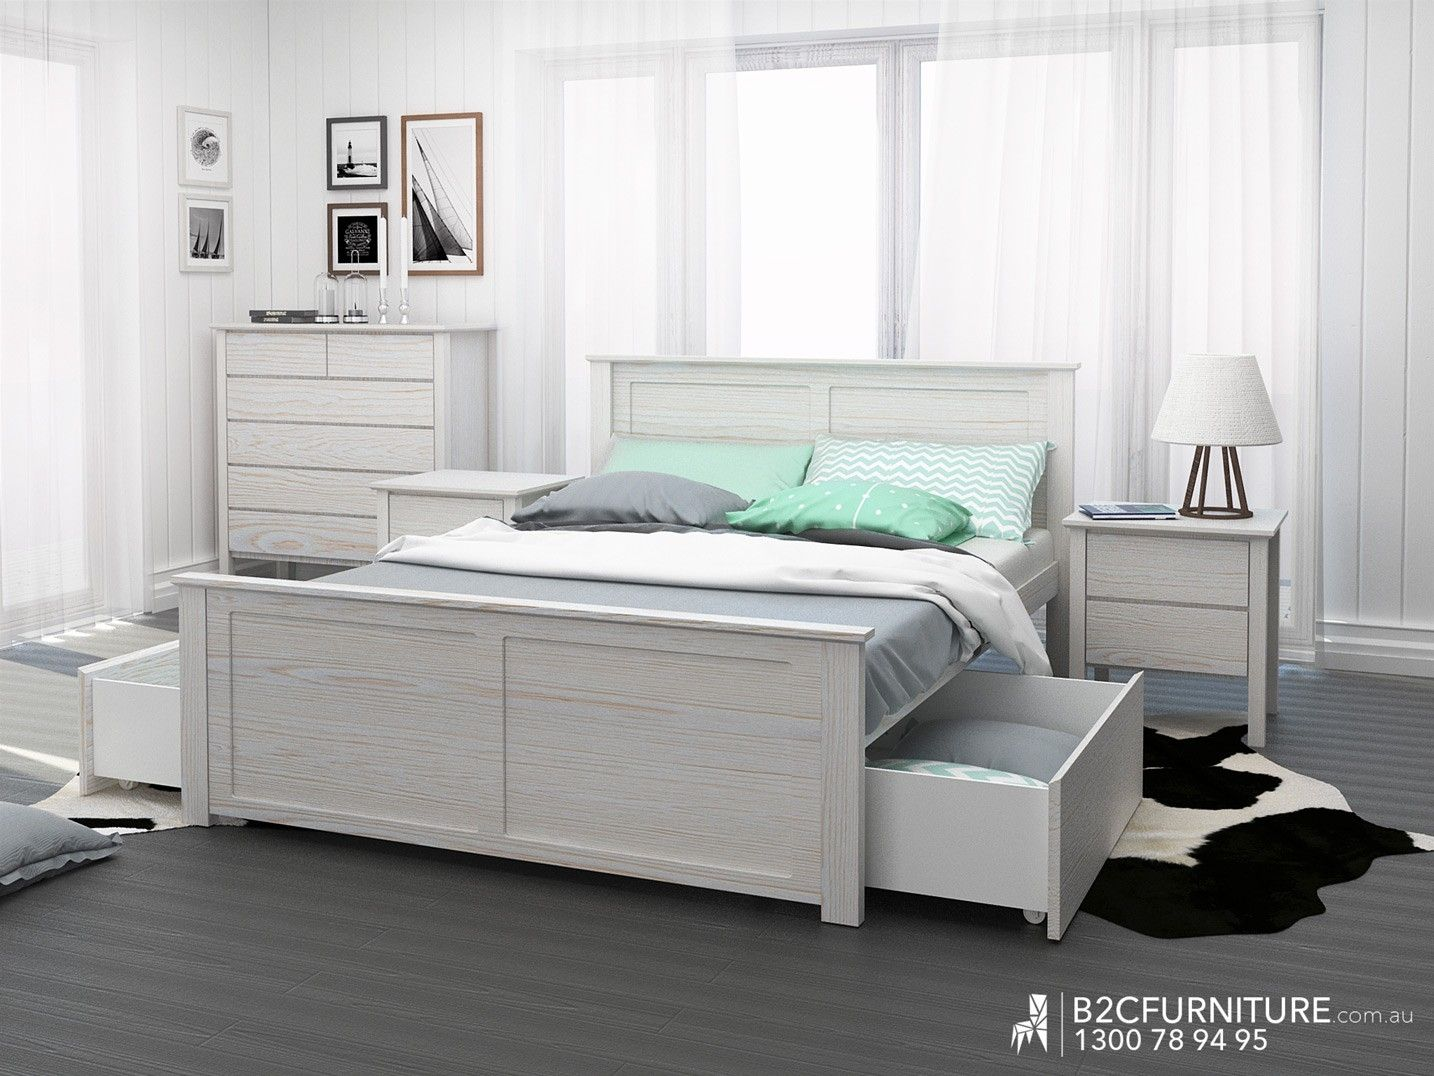 Whitewash Queen Bed Frame White Bed Frame Bed Frame Queen Bed Frame